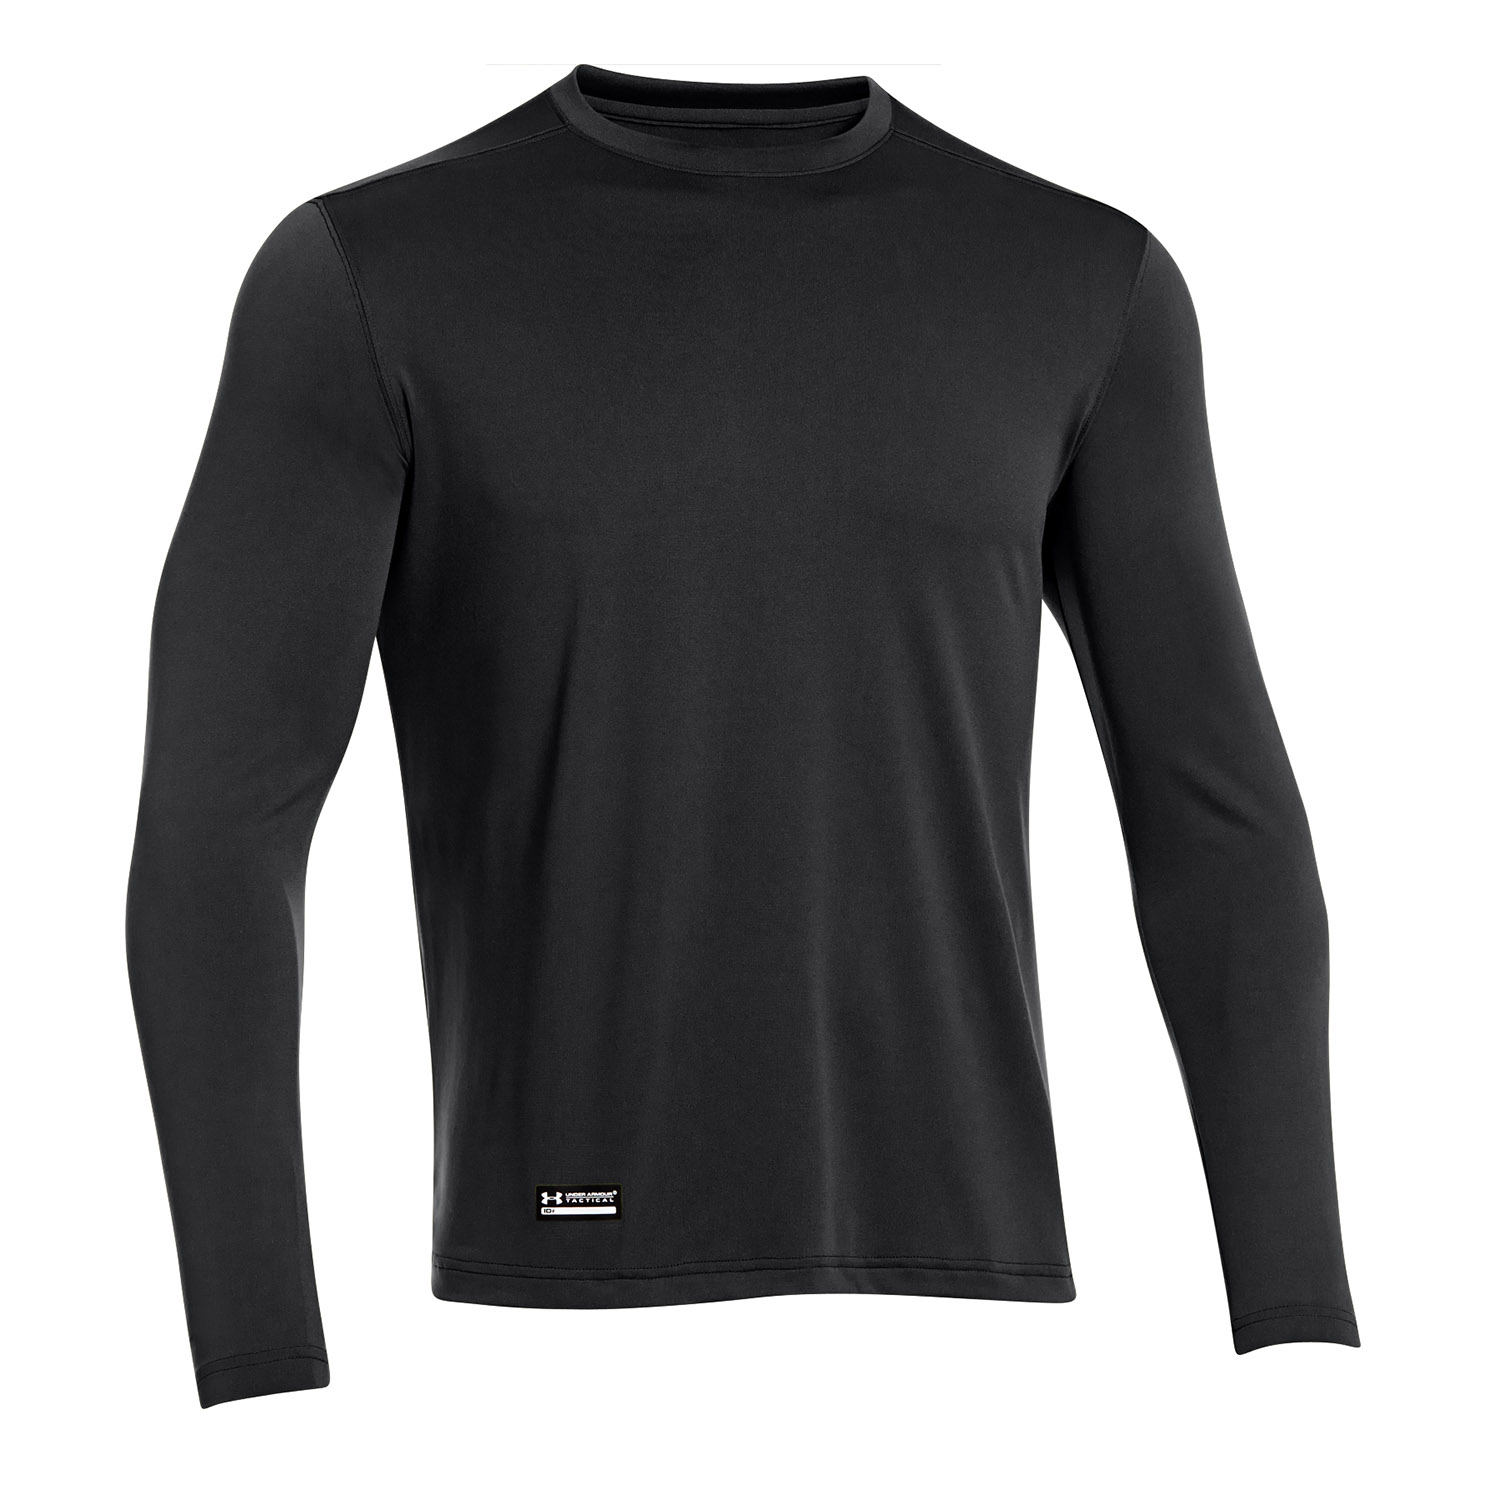 Under Armour Tac Tech Long Sleeve T-Shirt